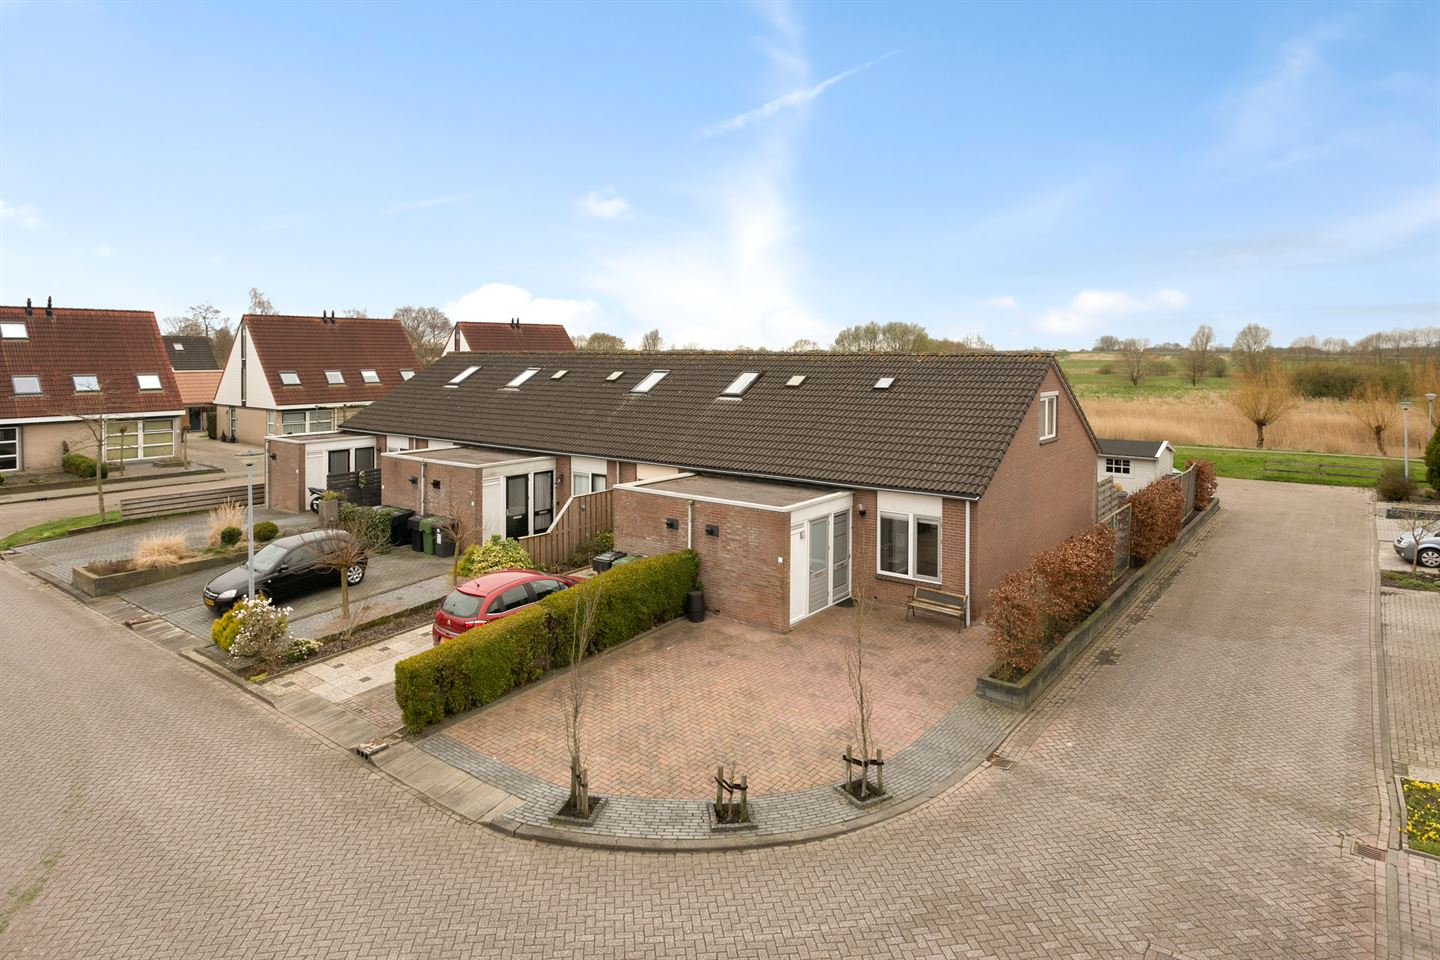 View photo 1 of Duivenslag 9